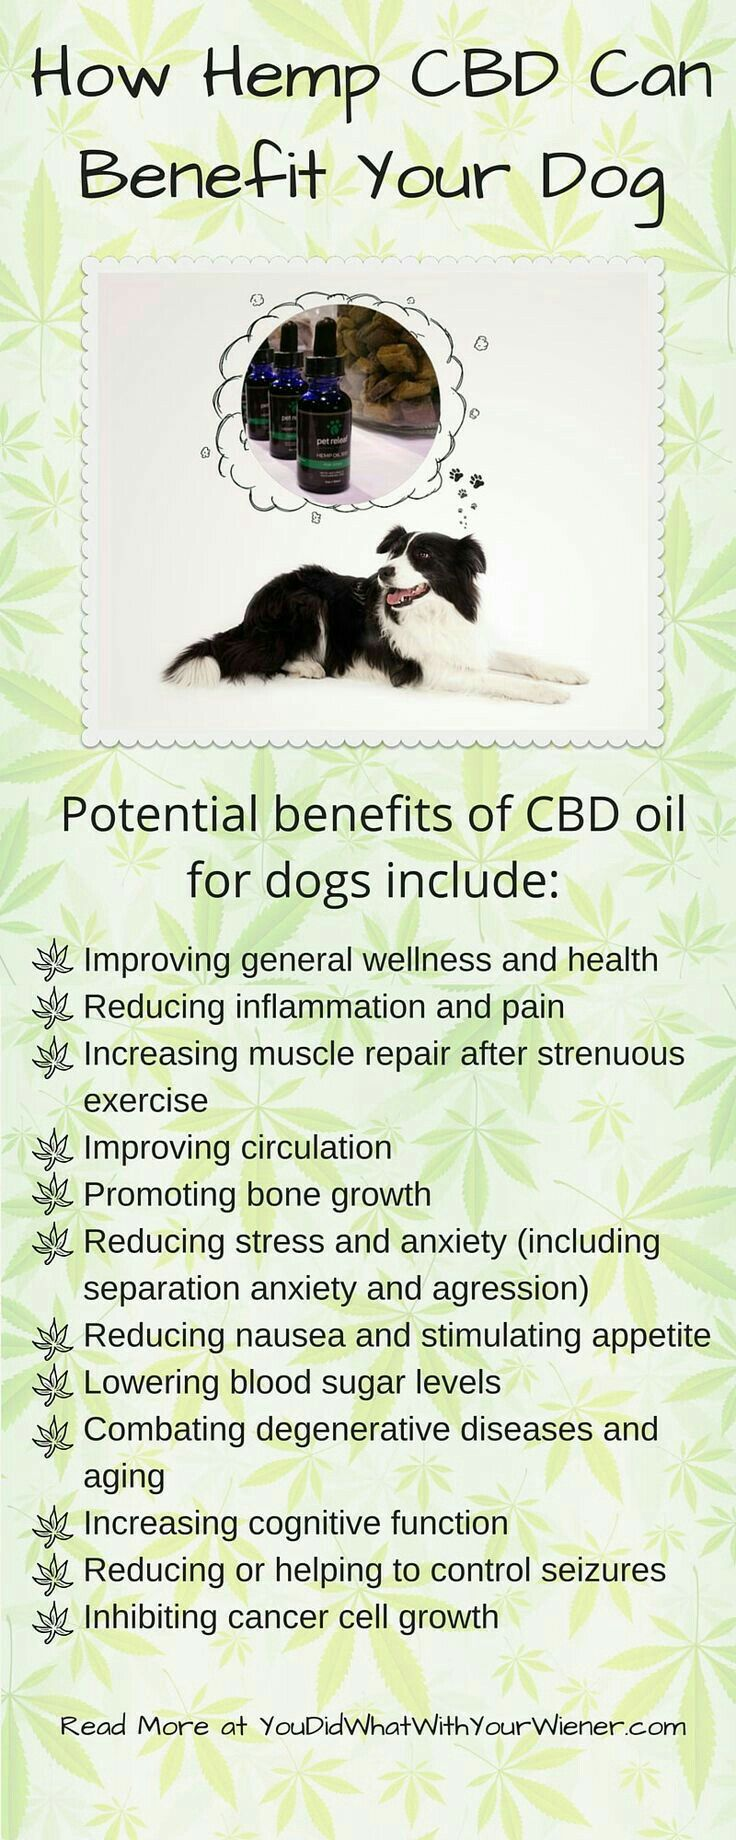 Hemp CBD oil benefits for dogs and other pets